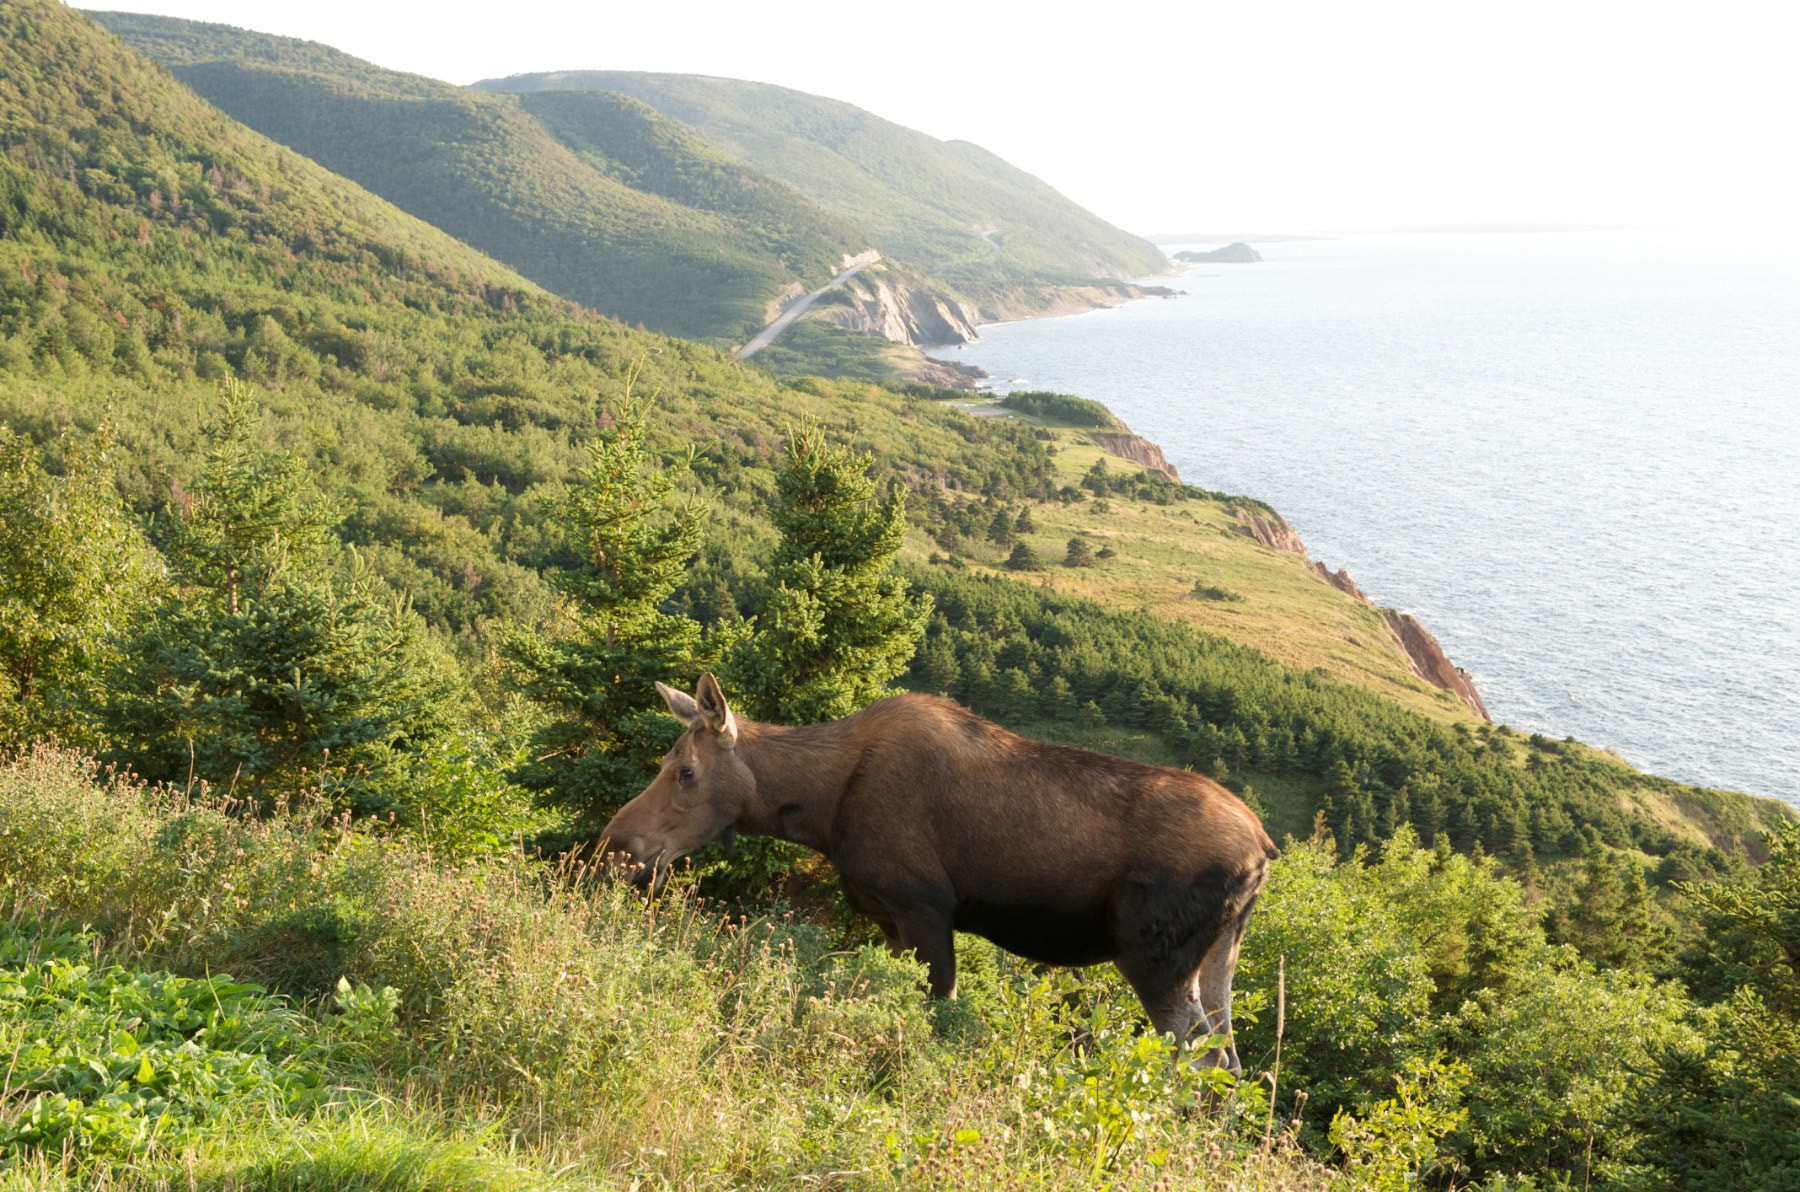 Moose along the Cabot Trail in Cape Breton Highlands National Park near Cheticamp, Nova Scotia, Canada | Courtesy of Nova Scotia Tourism